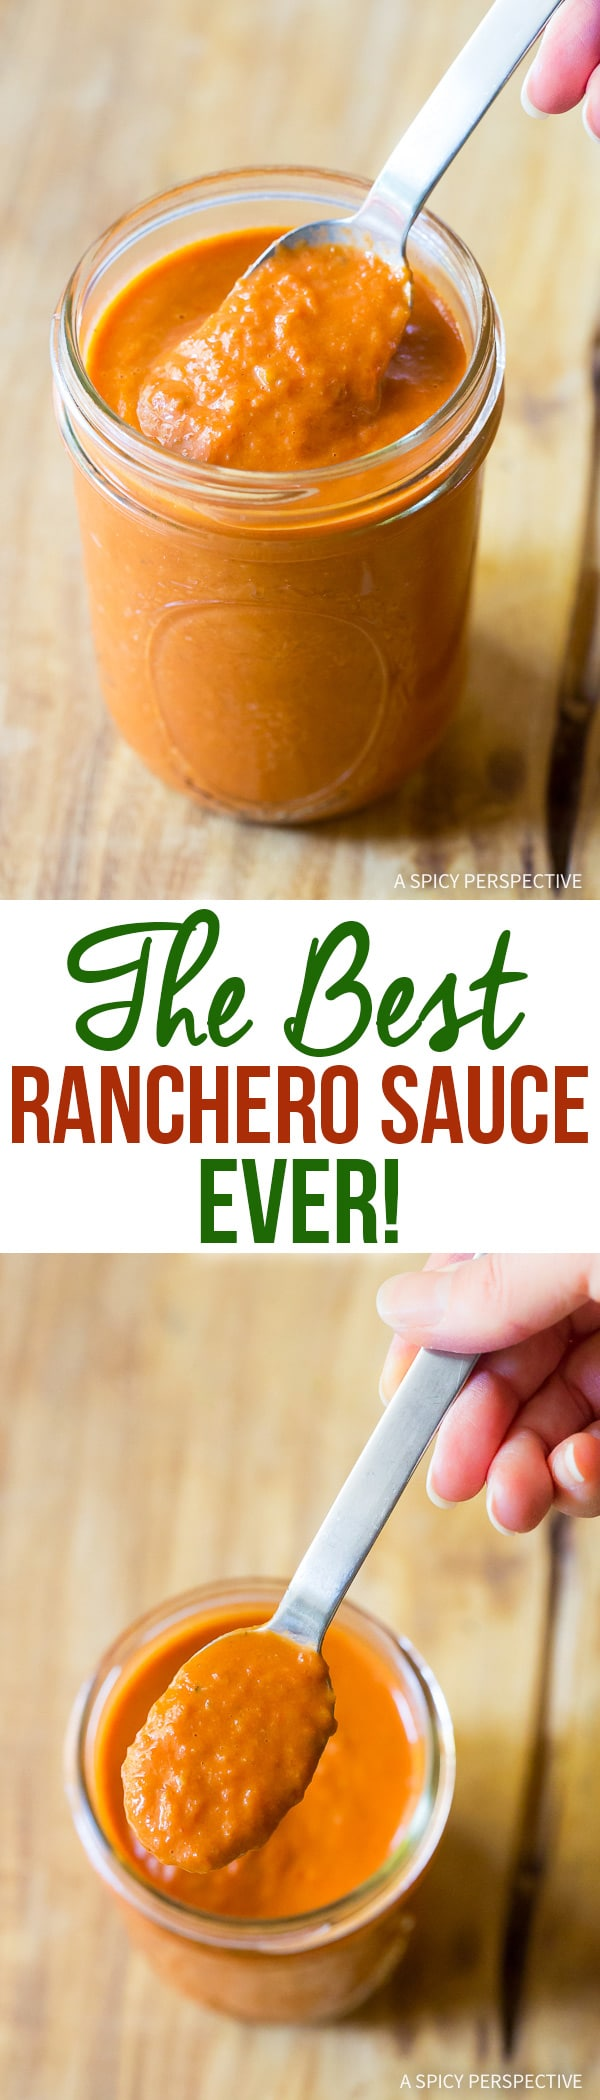 The Best Ranchero Sauce Recipe Ever